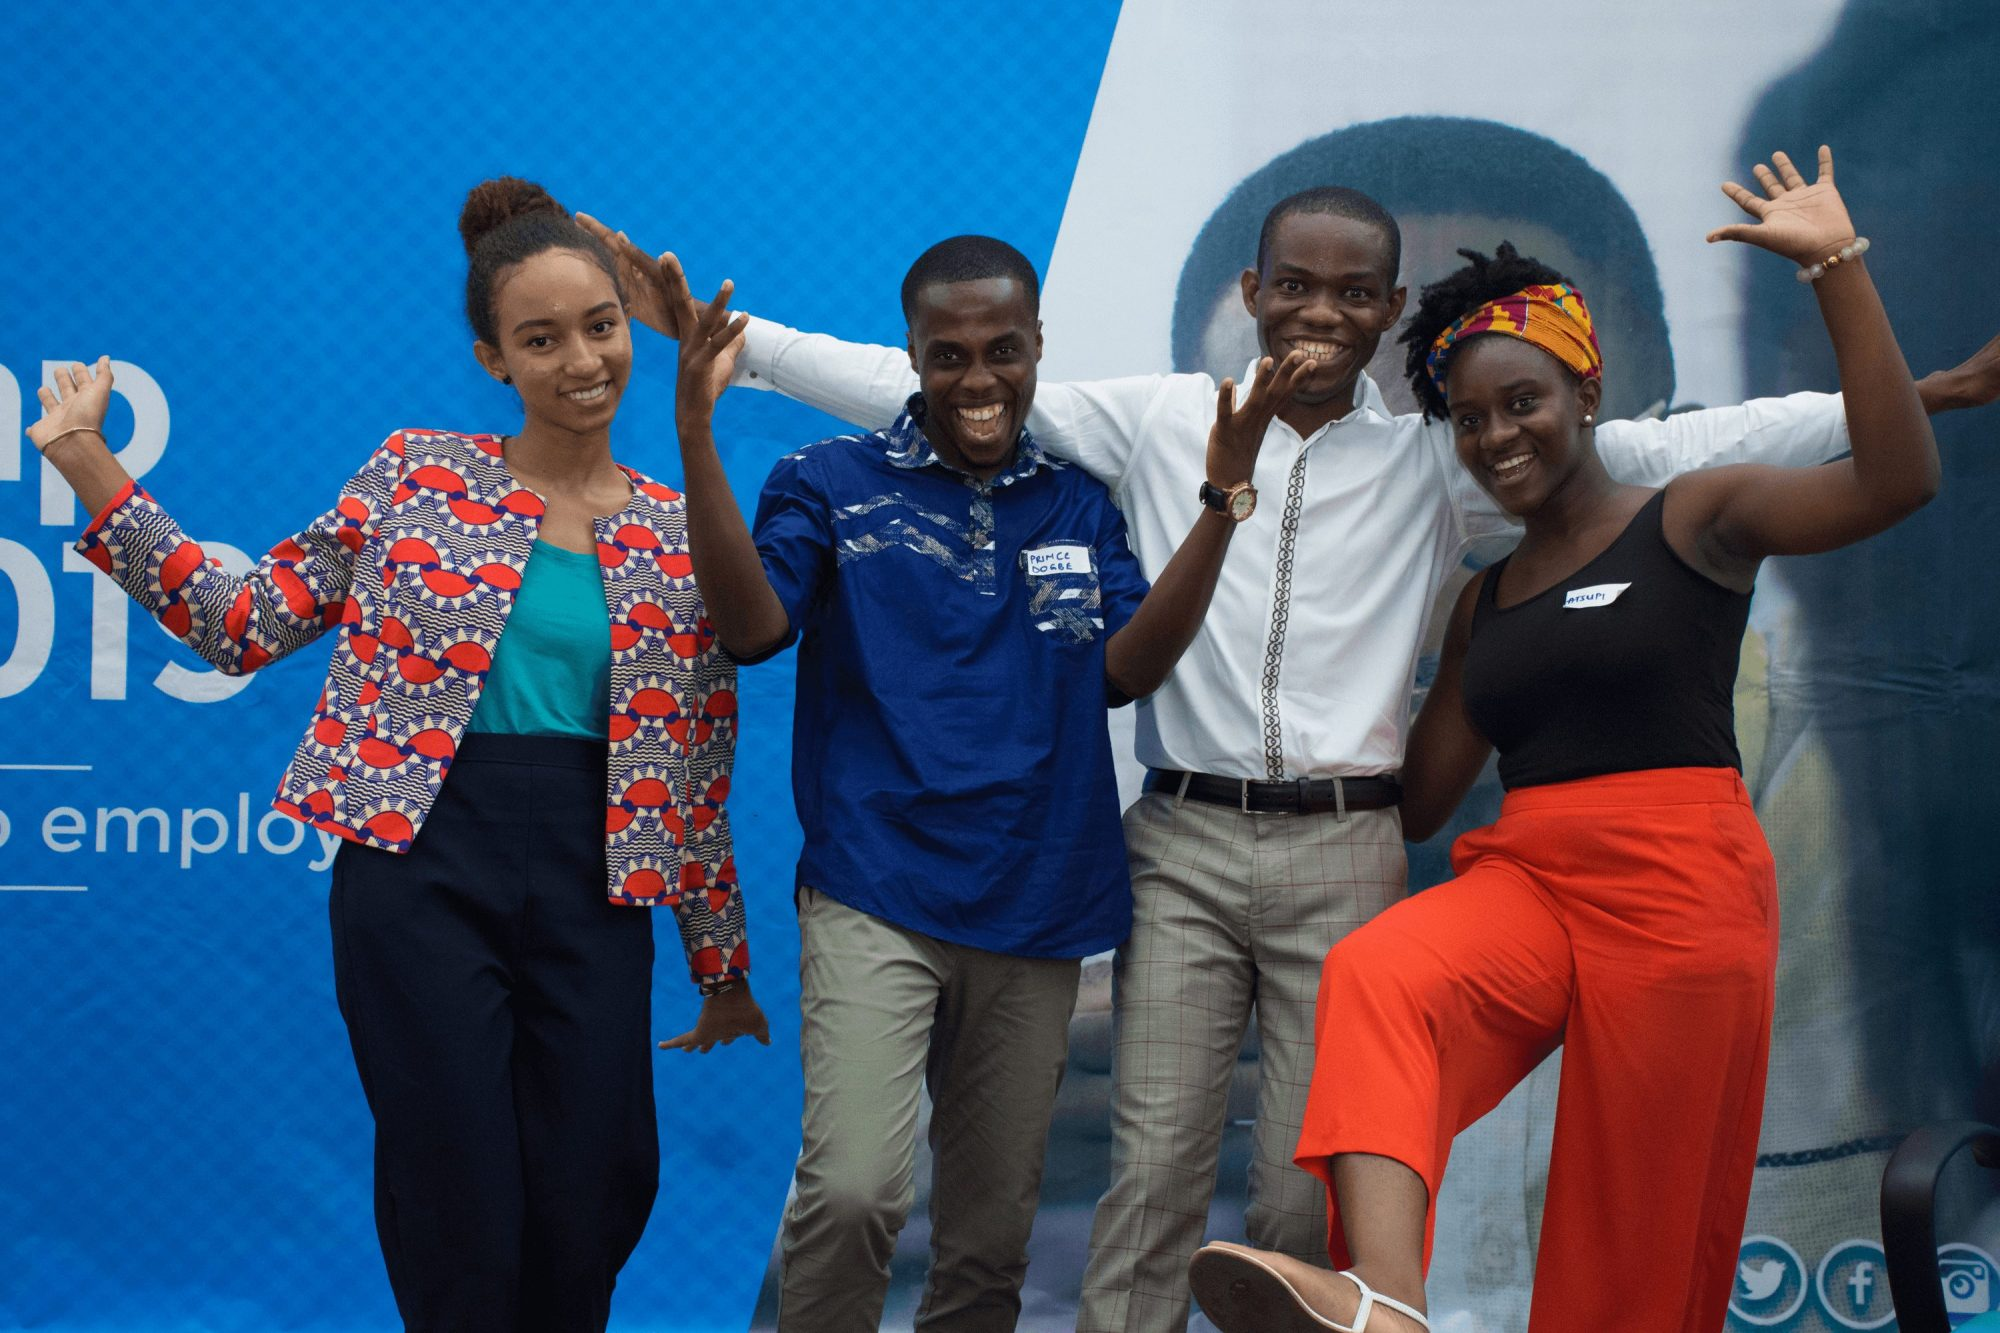 Stars From All Nations (SFAN) Opens Application For Inaugural Student  Entrepreneurship Week Pan-Africa - Tech Nova